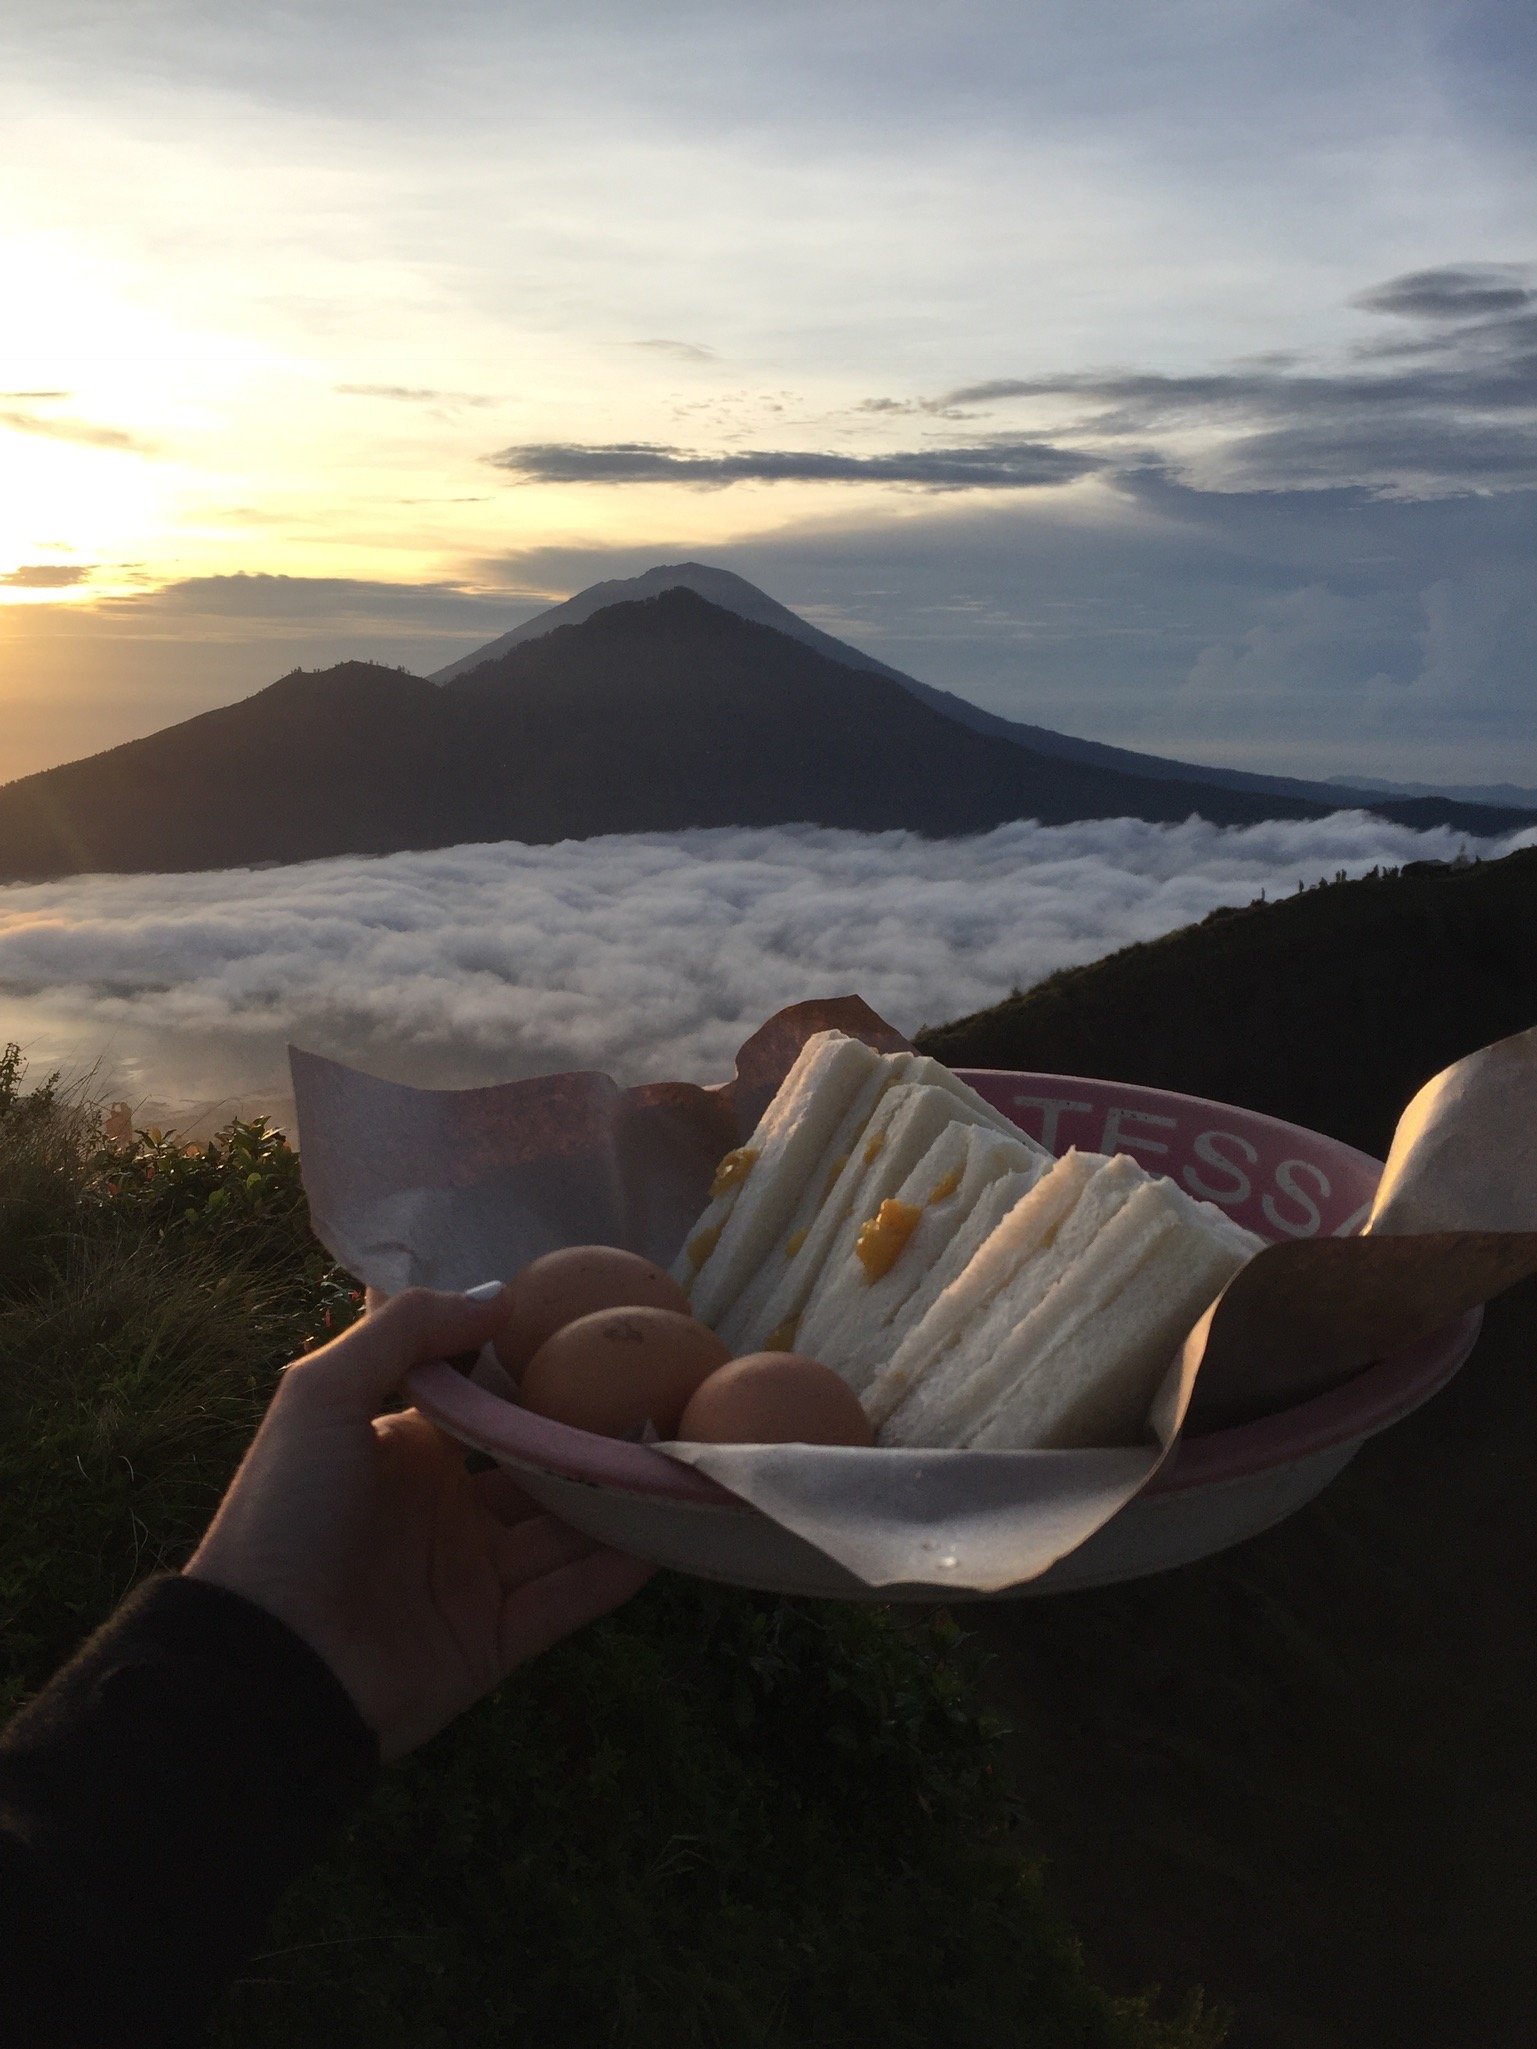 Steamed banana sandwiches and eggs, cooked over the steam rising from the depths of Mount Batur.